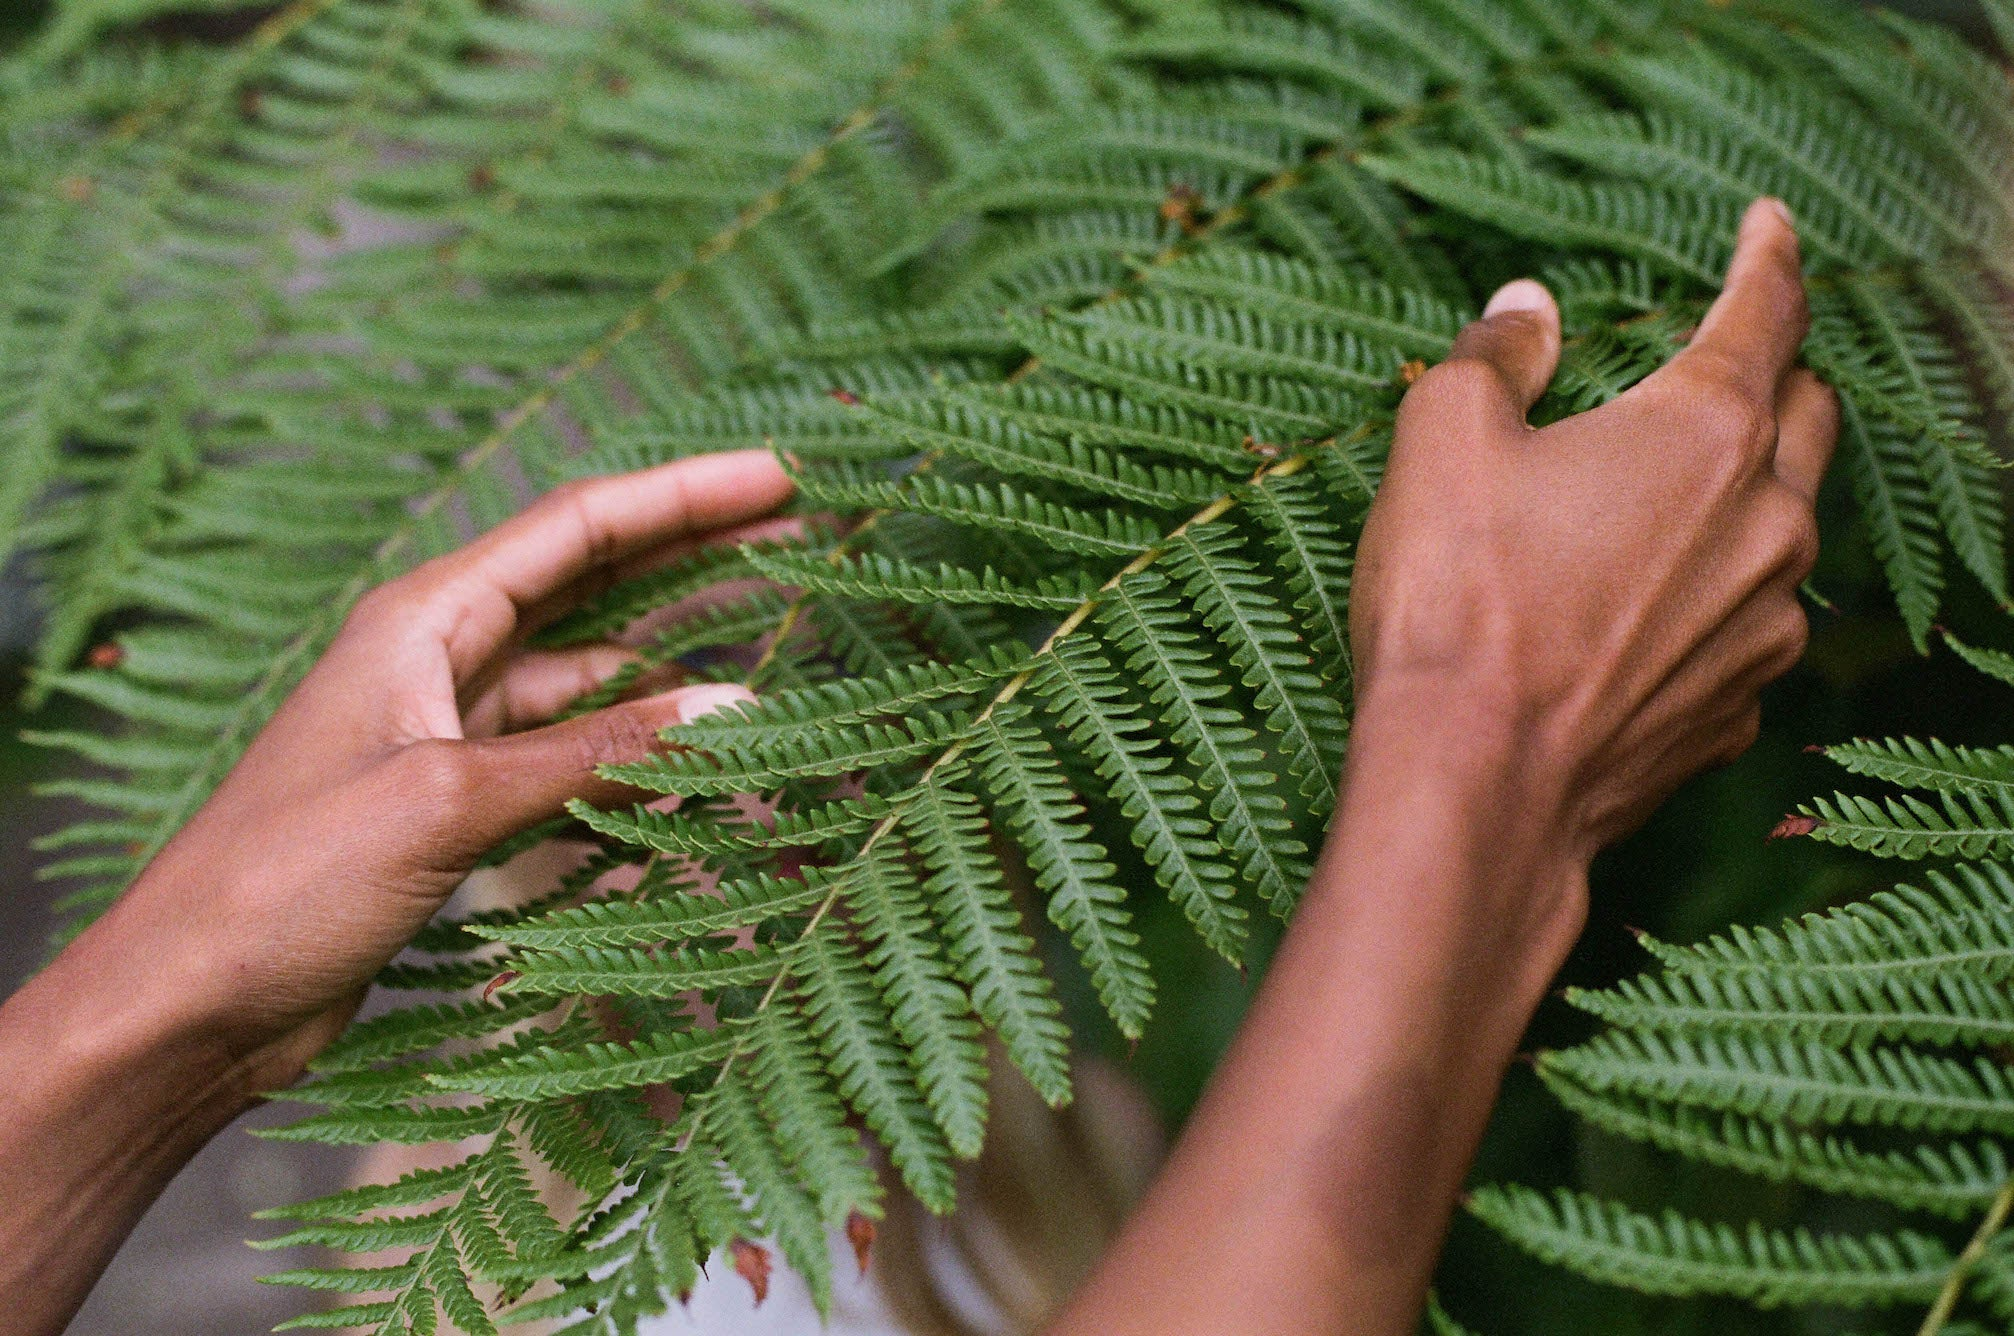 Two hands gently touching a vivid green fern frond. Shot by Kate Rentz.